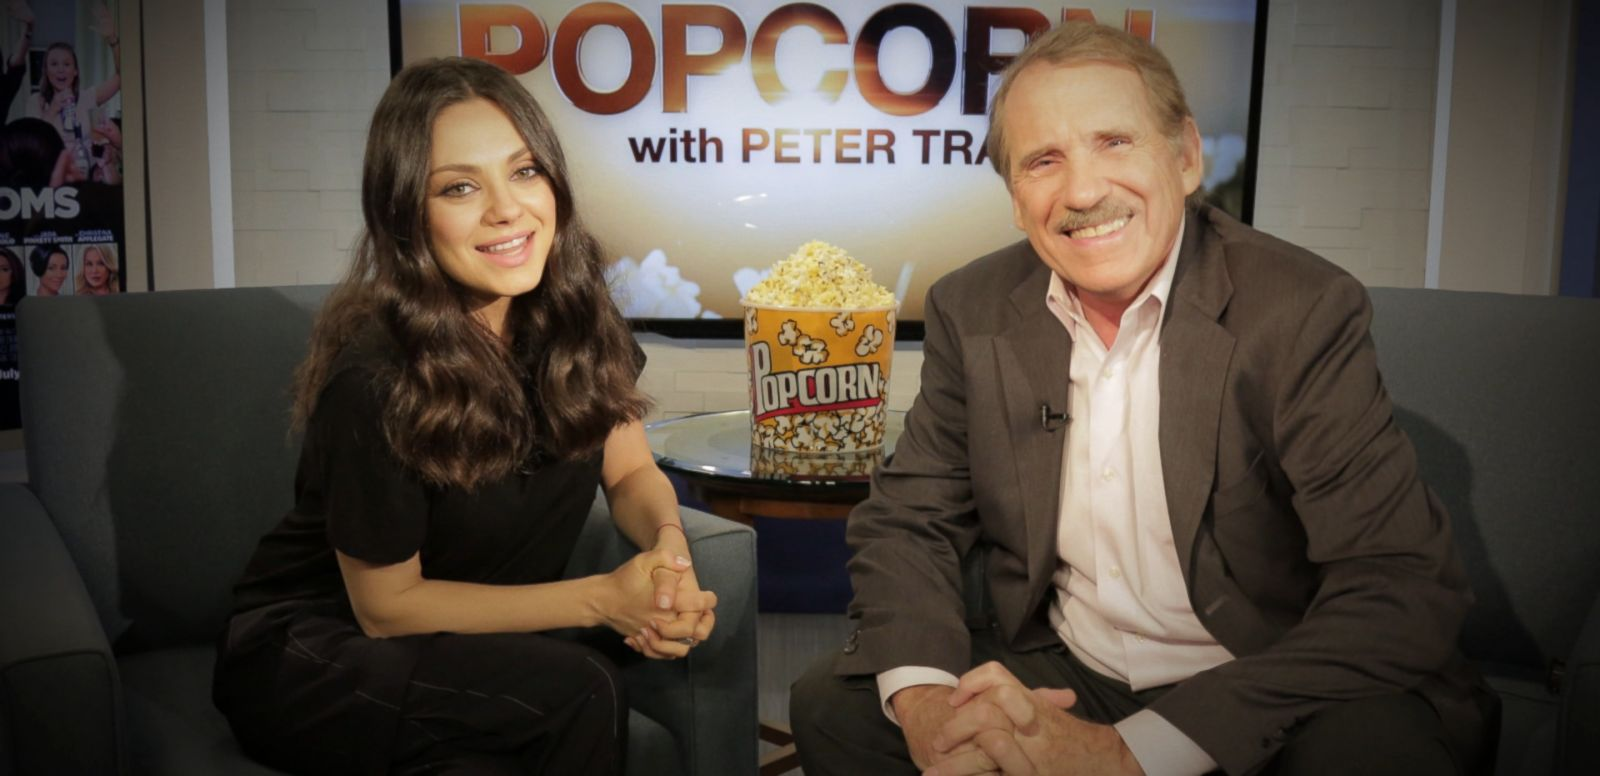 VIDEO: Mila Kunis Says Hollywood Needs More Leading Roles for Women